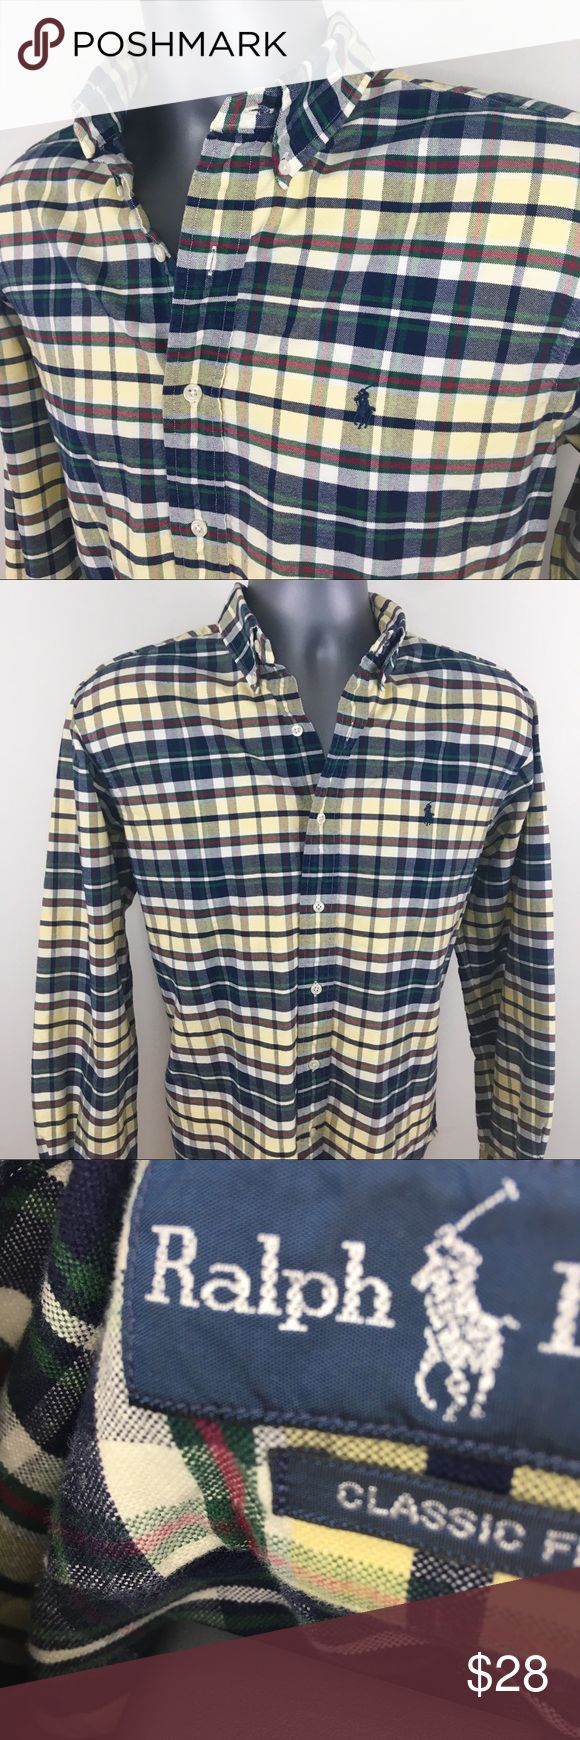 ✨Ralph Lauren Men's Plaid Button Down Shirt Ralph Lauren Men's Plaid Button Down Shirt  ▪️Size Large - Neck 16 - Sleeves 34/35 ▪️Blue & Yellow Plaid  ▪️Pony logo on chest  ▪️100% Cotton  ▪️Made in the Philippines 🇵🇭 ▪️Excellent Condition ‼️ Polo by Ralph Lauren Shirts Casual Button Down Shirts